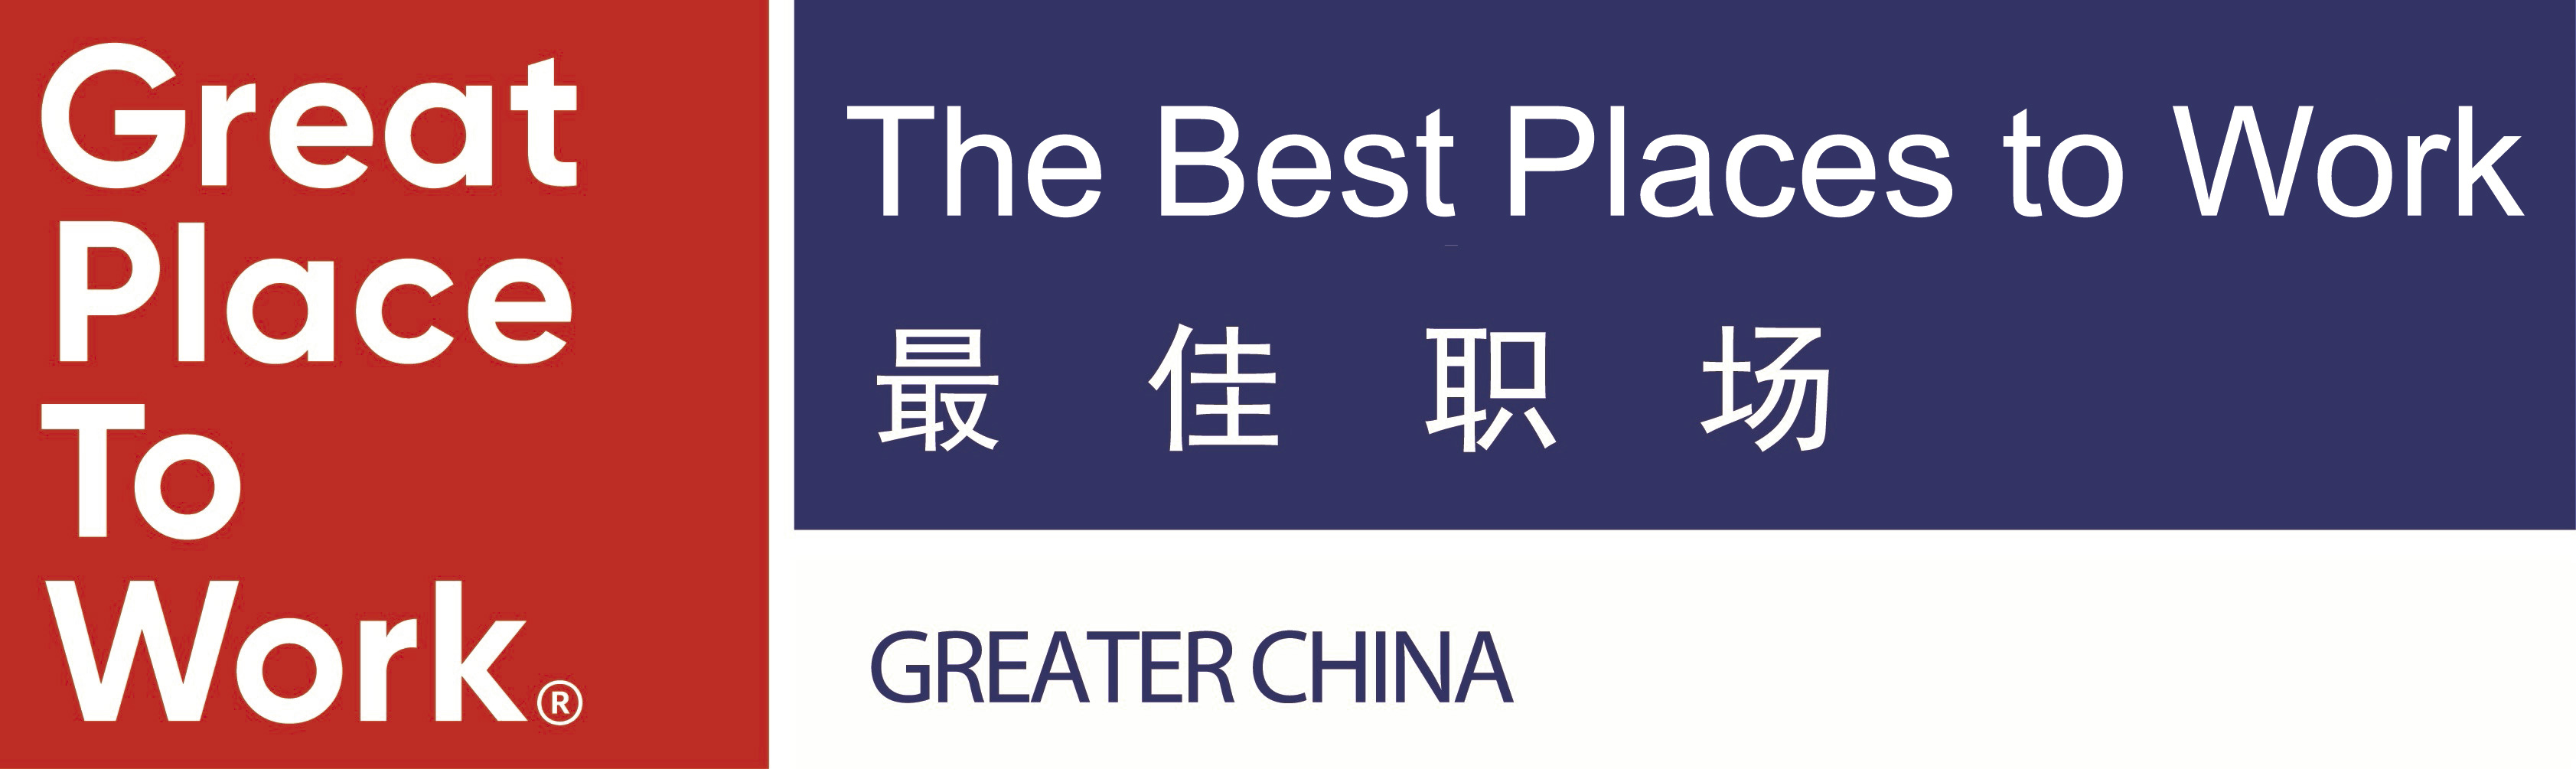 greater_china3